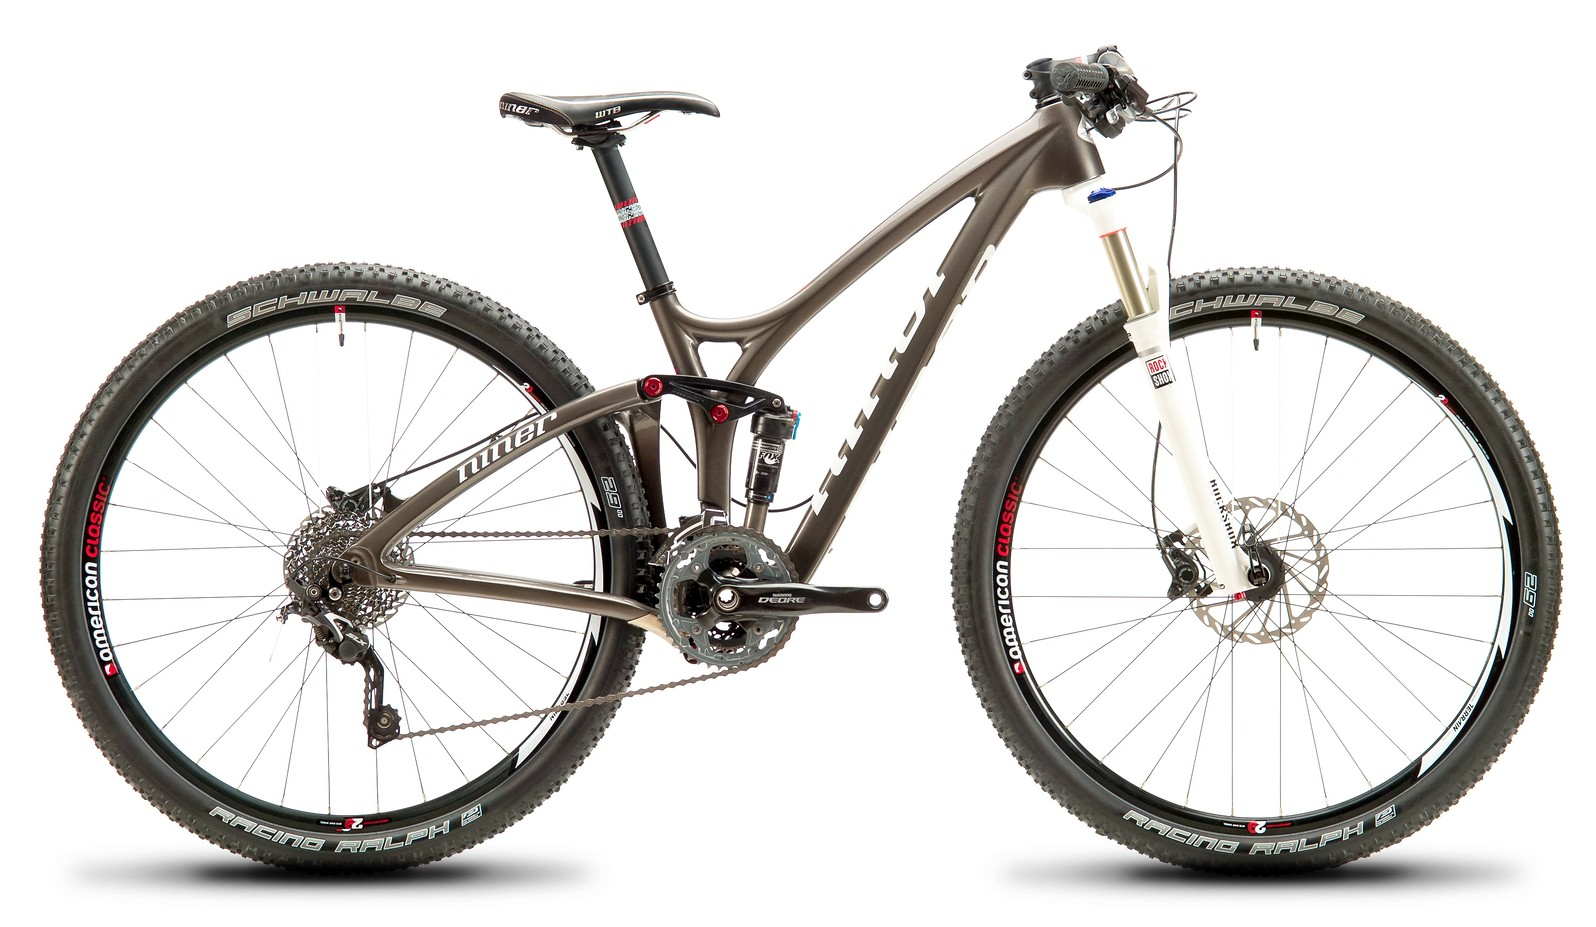 2013 Niner Jet 9 Carbon with SLX:Deore